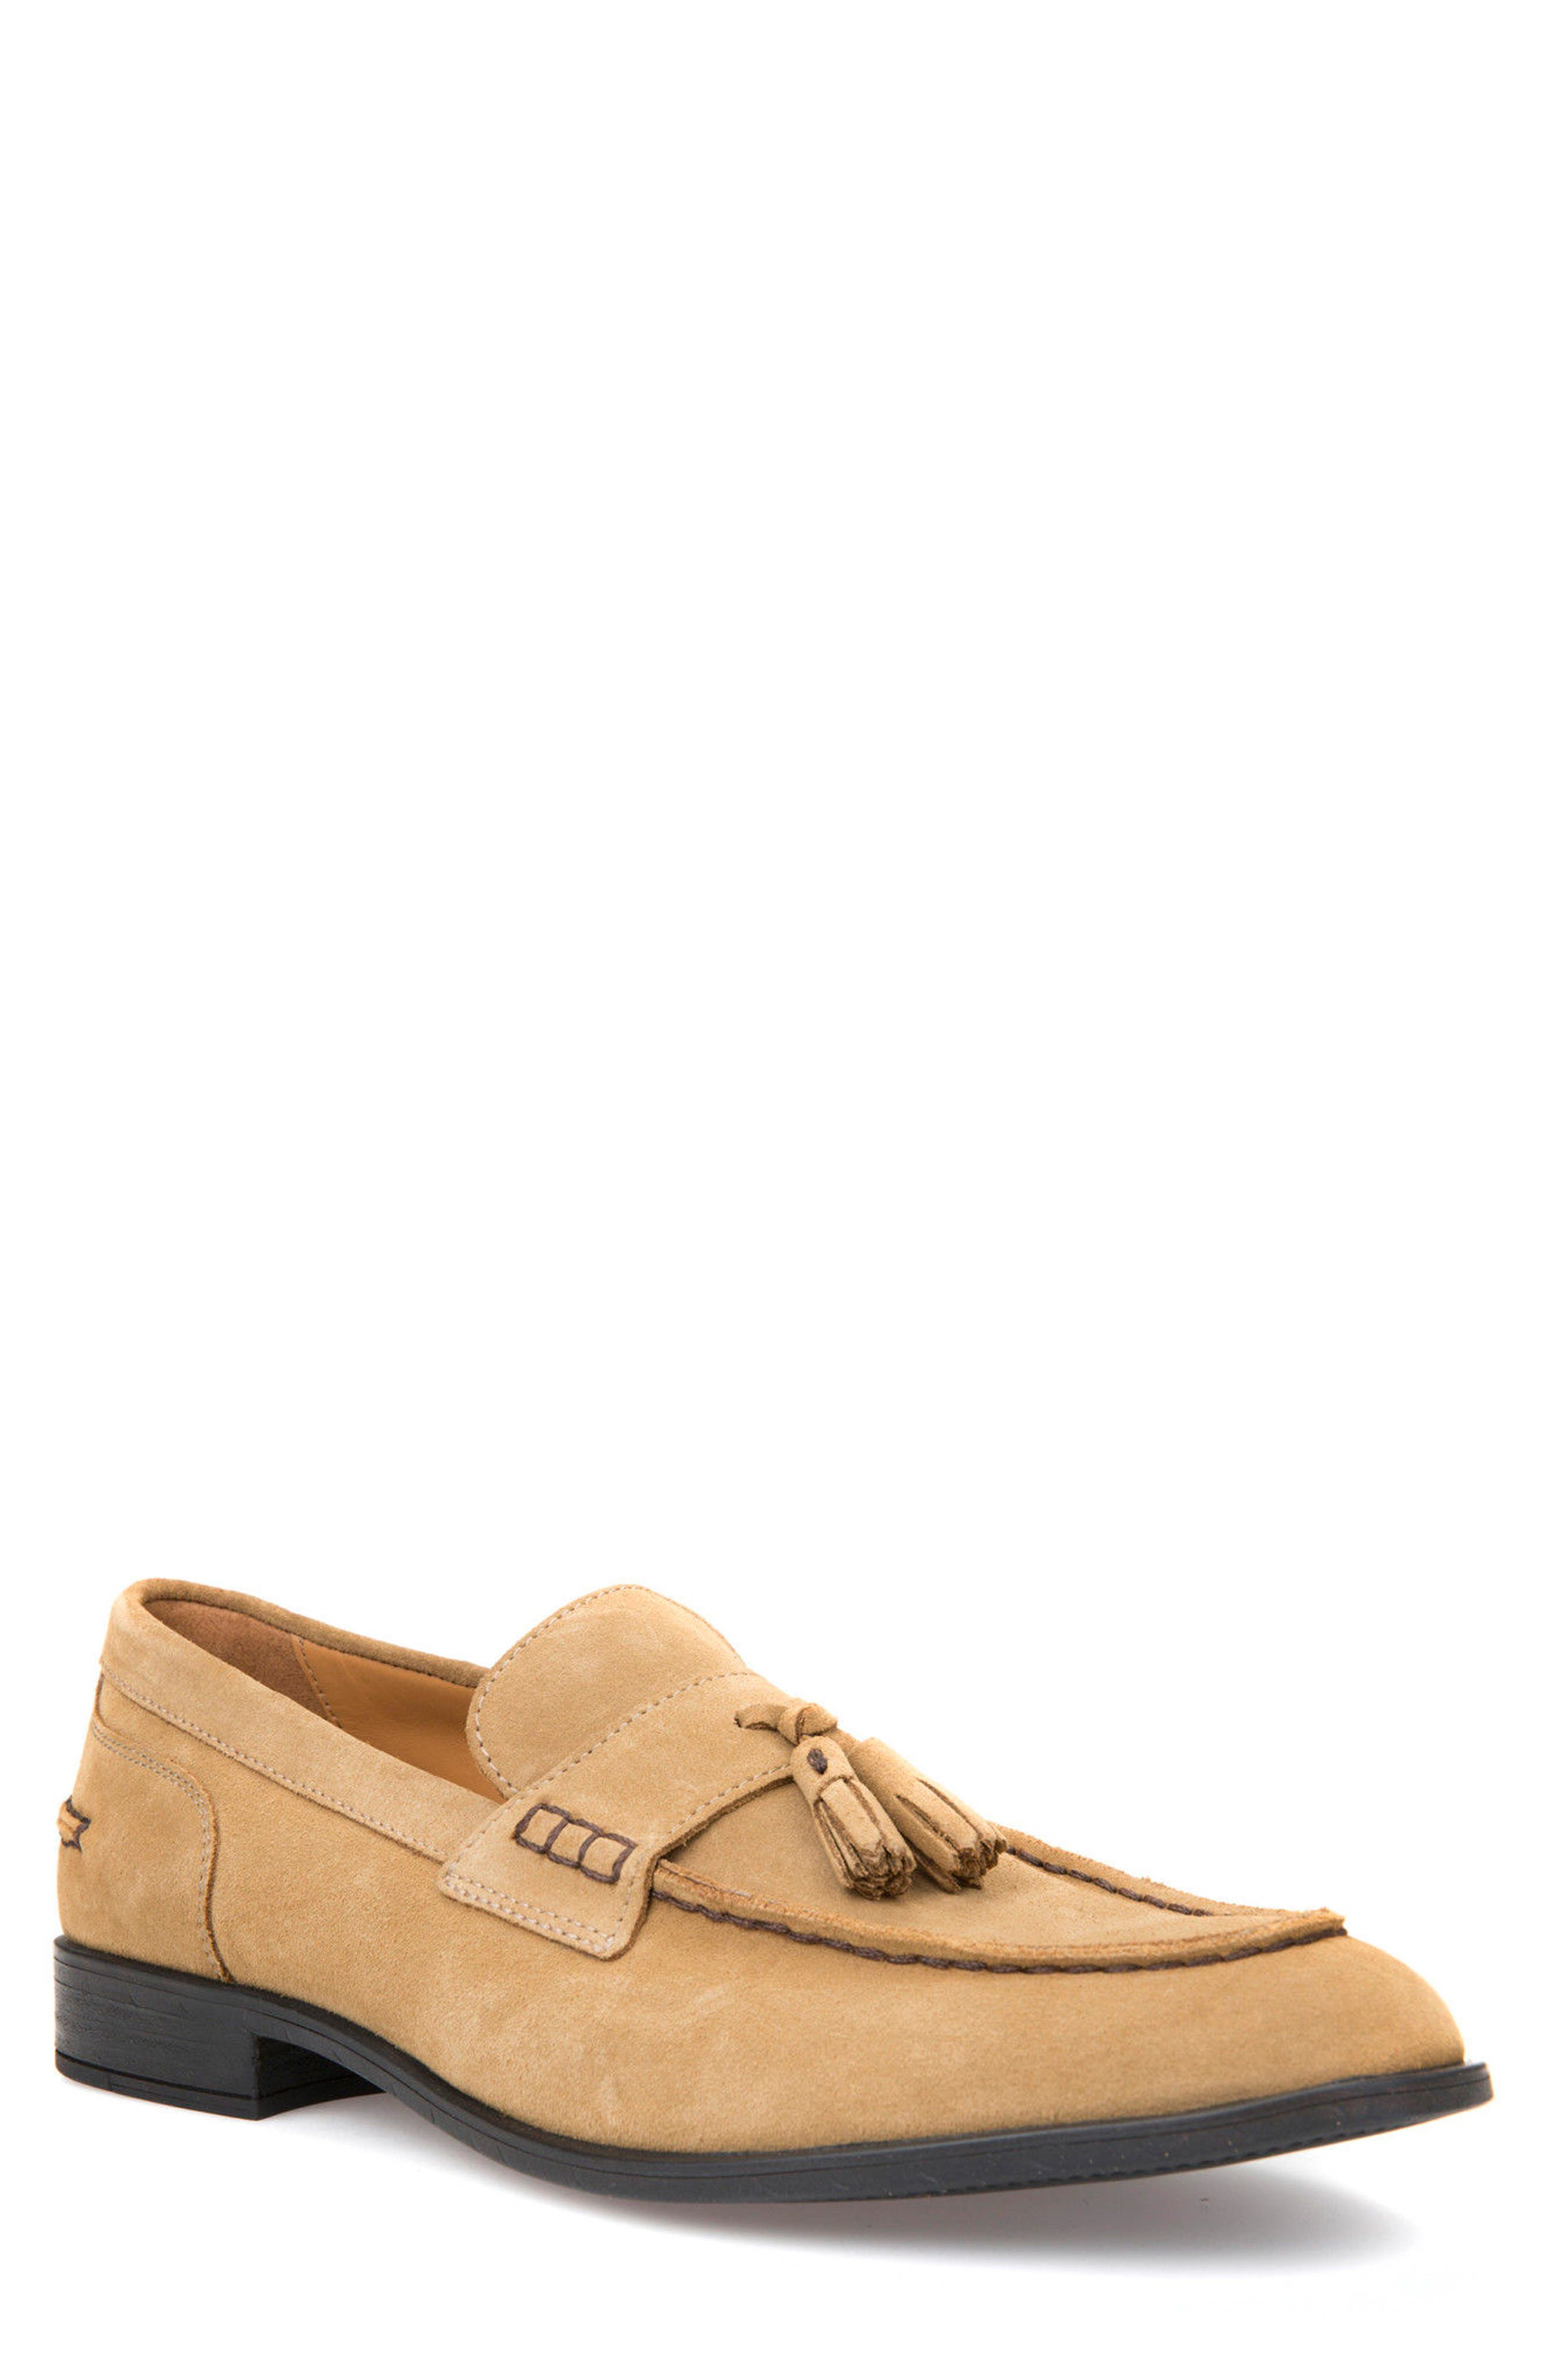 Bryceton 1 Tassel Loafer,                             Main thumbnail 1, color,                             206